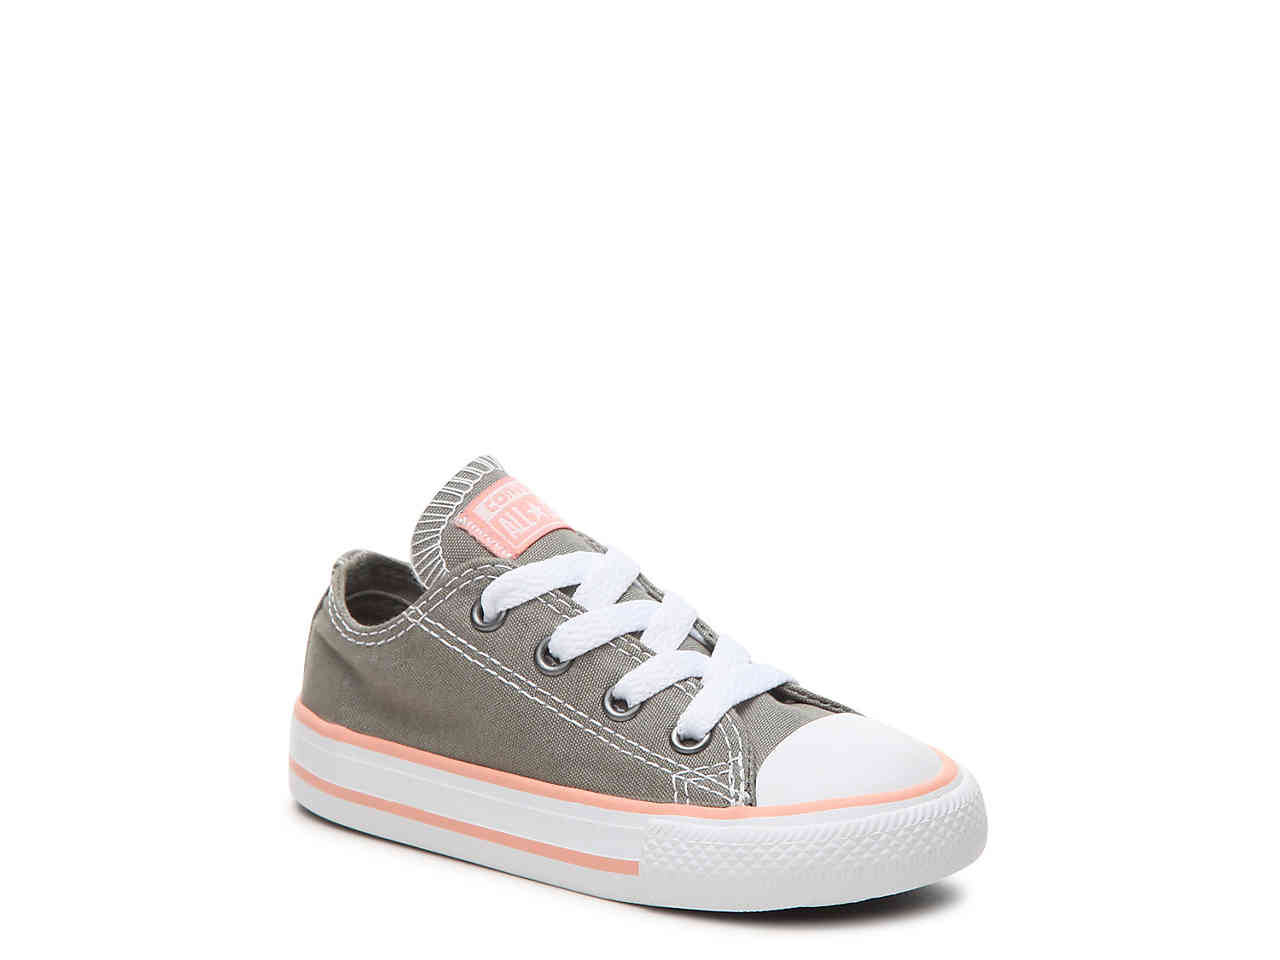 Chuck Taylor All Star Coral/White Lo Top Sneaker, Dark Stucco/Pale Coral/White Star 5.5Y 143f79